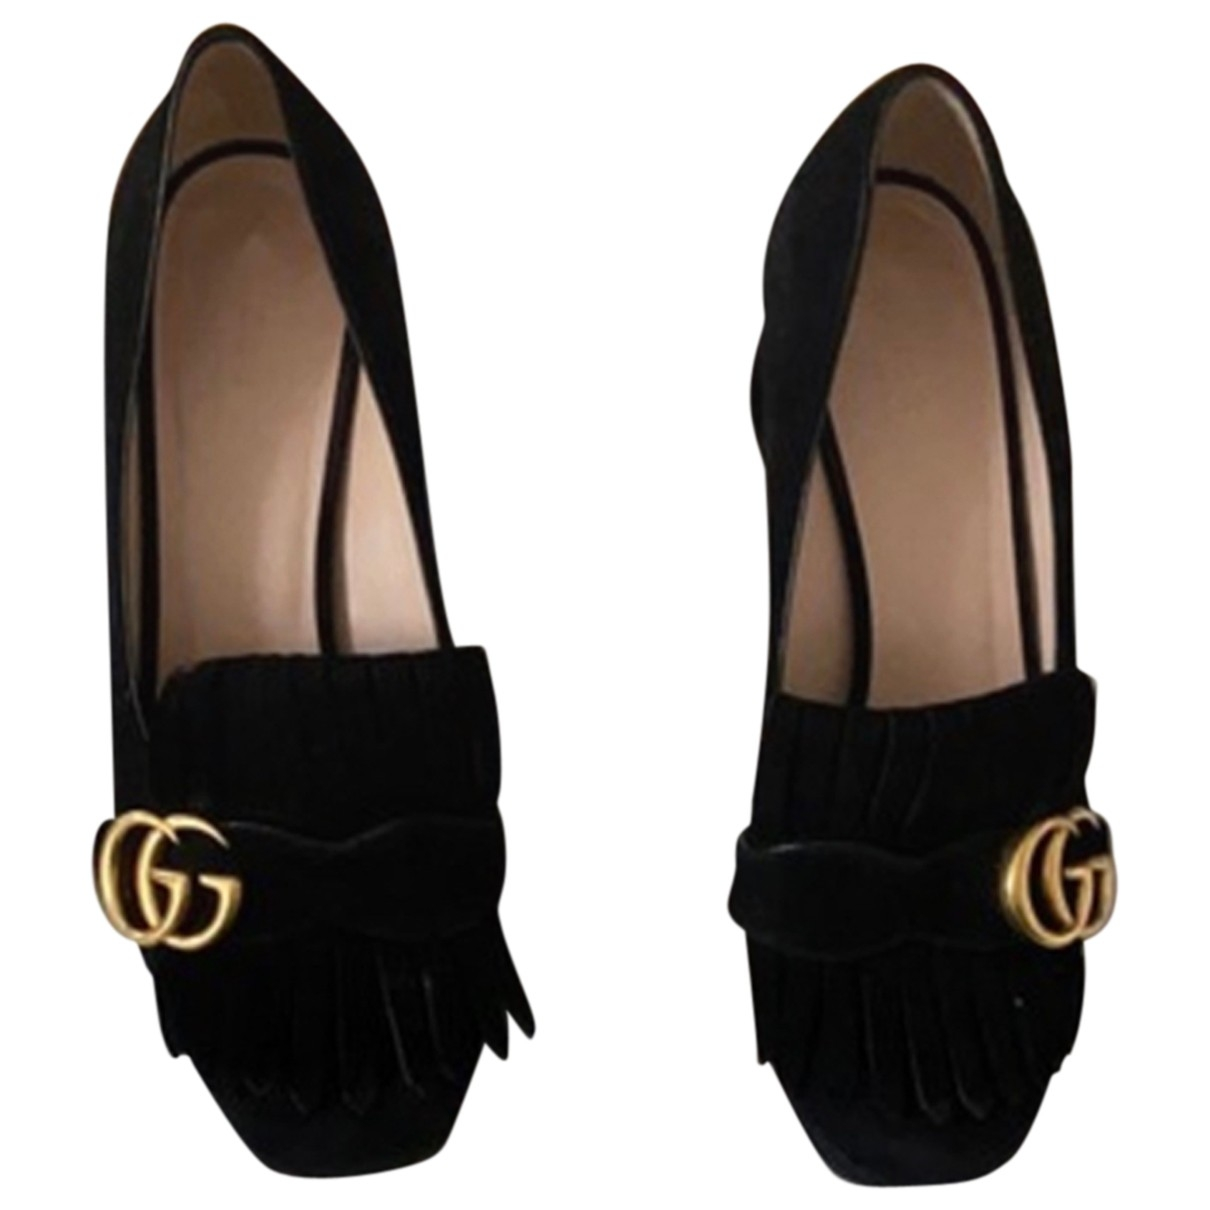 Gucci Marmont Black Suede Heels for Women 37 EU